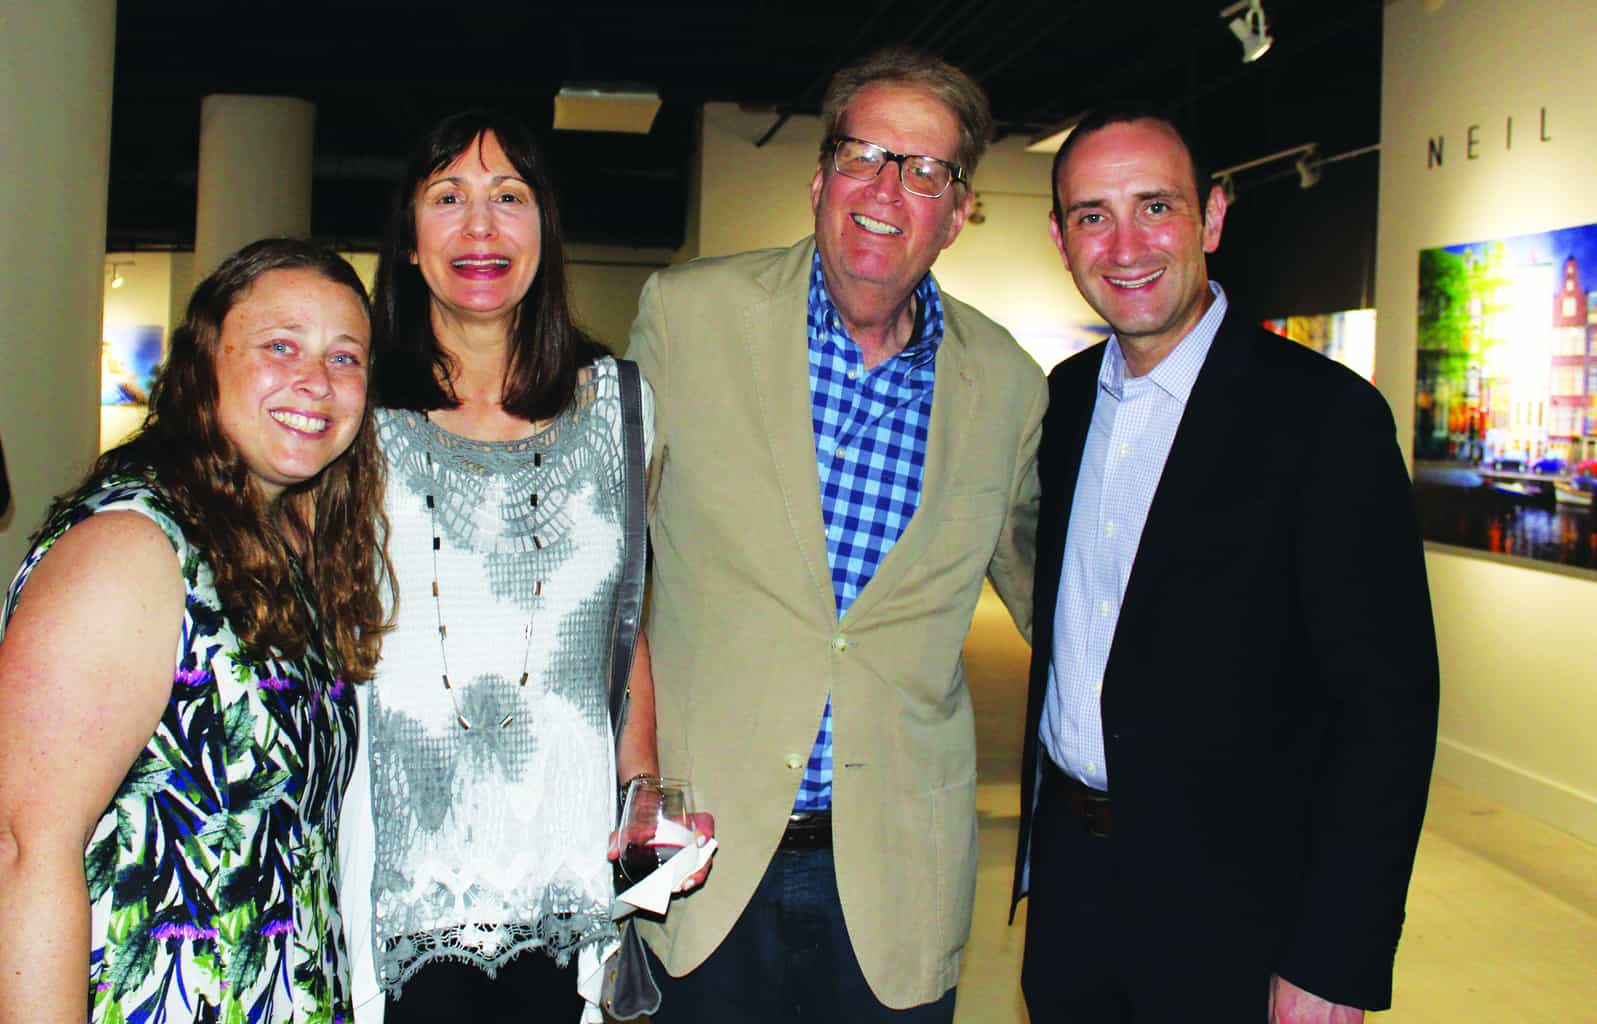 kandy-gallery-opening-and-olymbec-usa-team-up-to-benefit-memphis-jewish-federation